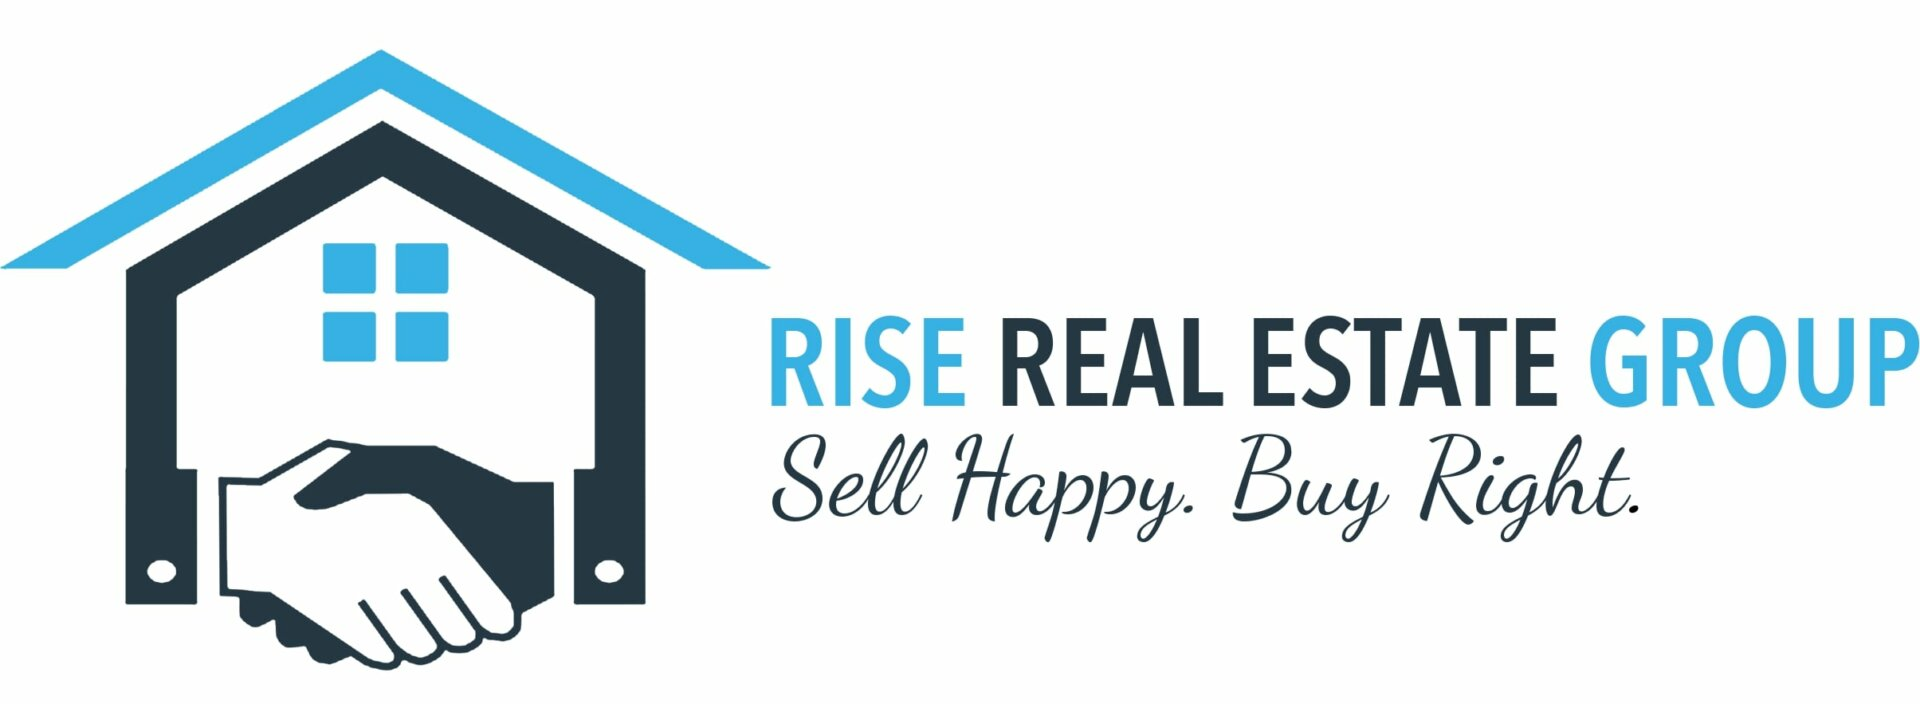 Rise Real Estate Group logo